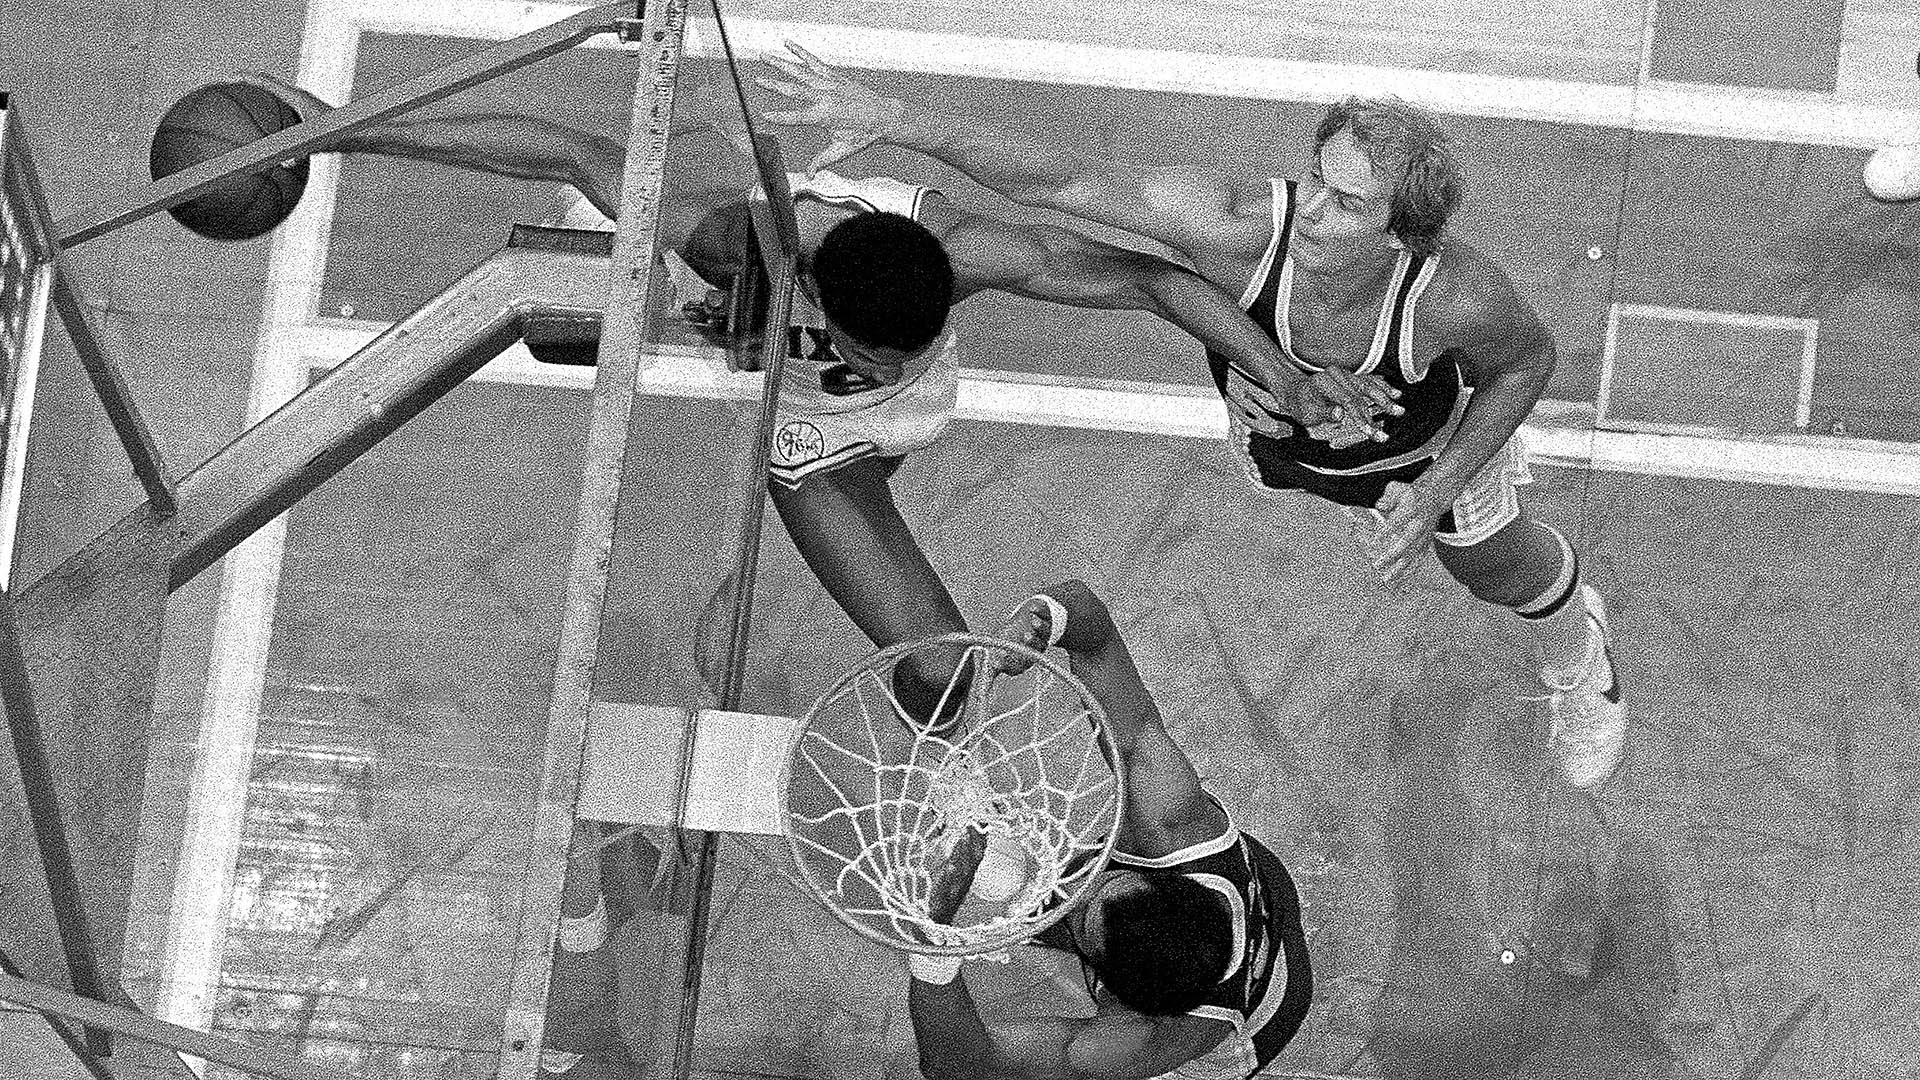 Top Moments: Julius Erving shocks Lakers with spectacular layup